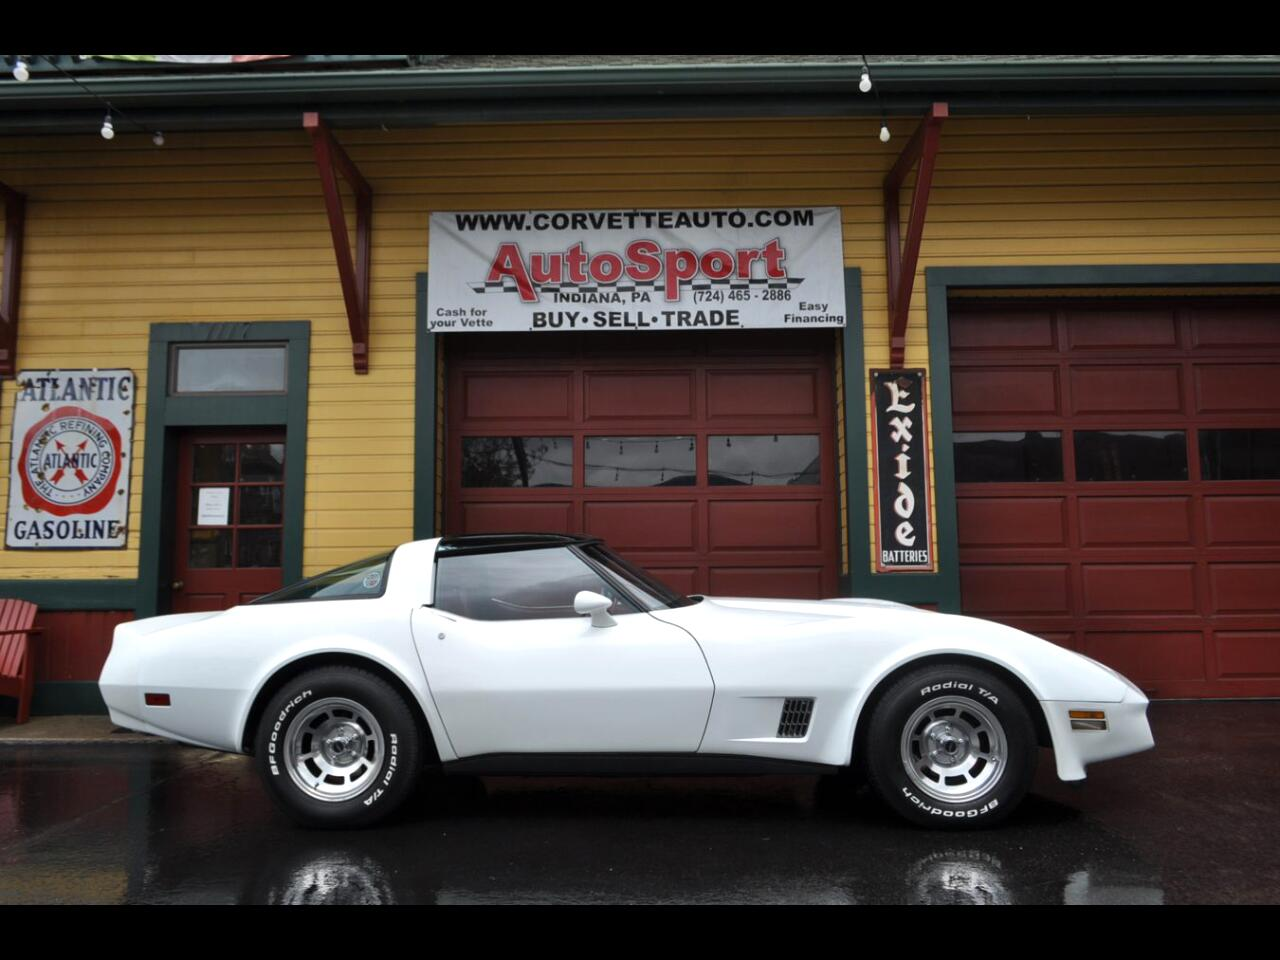 1981 Chevrolet Corvette 1981 9k Org Miles White/Red Org Docs Loaded!